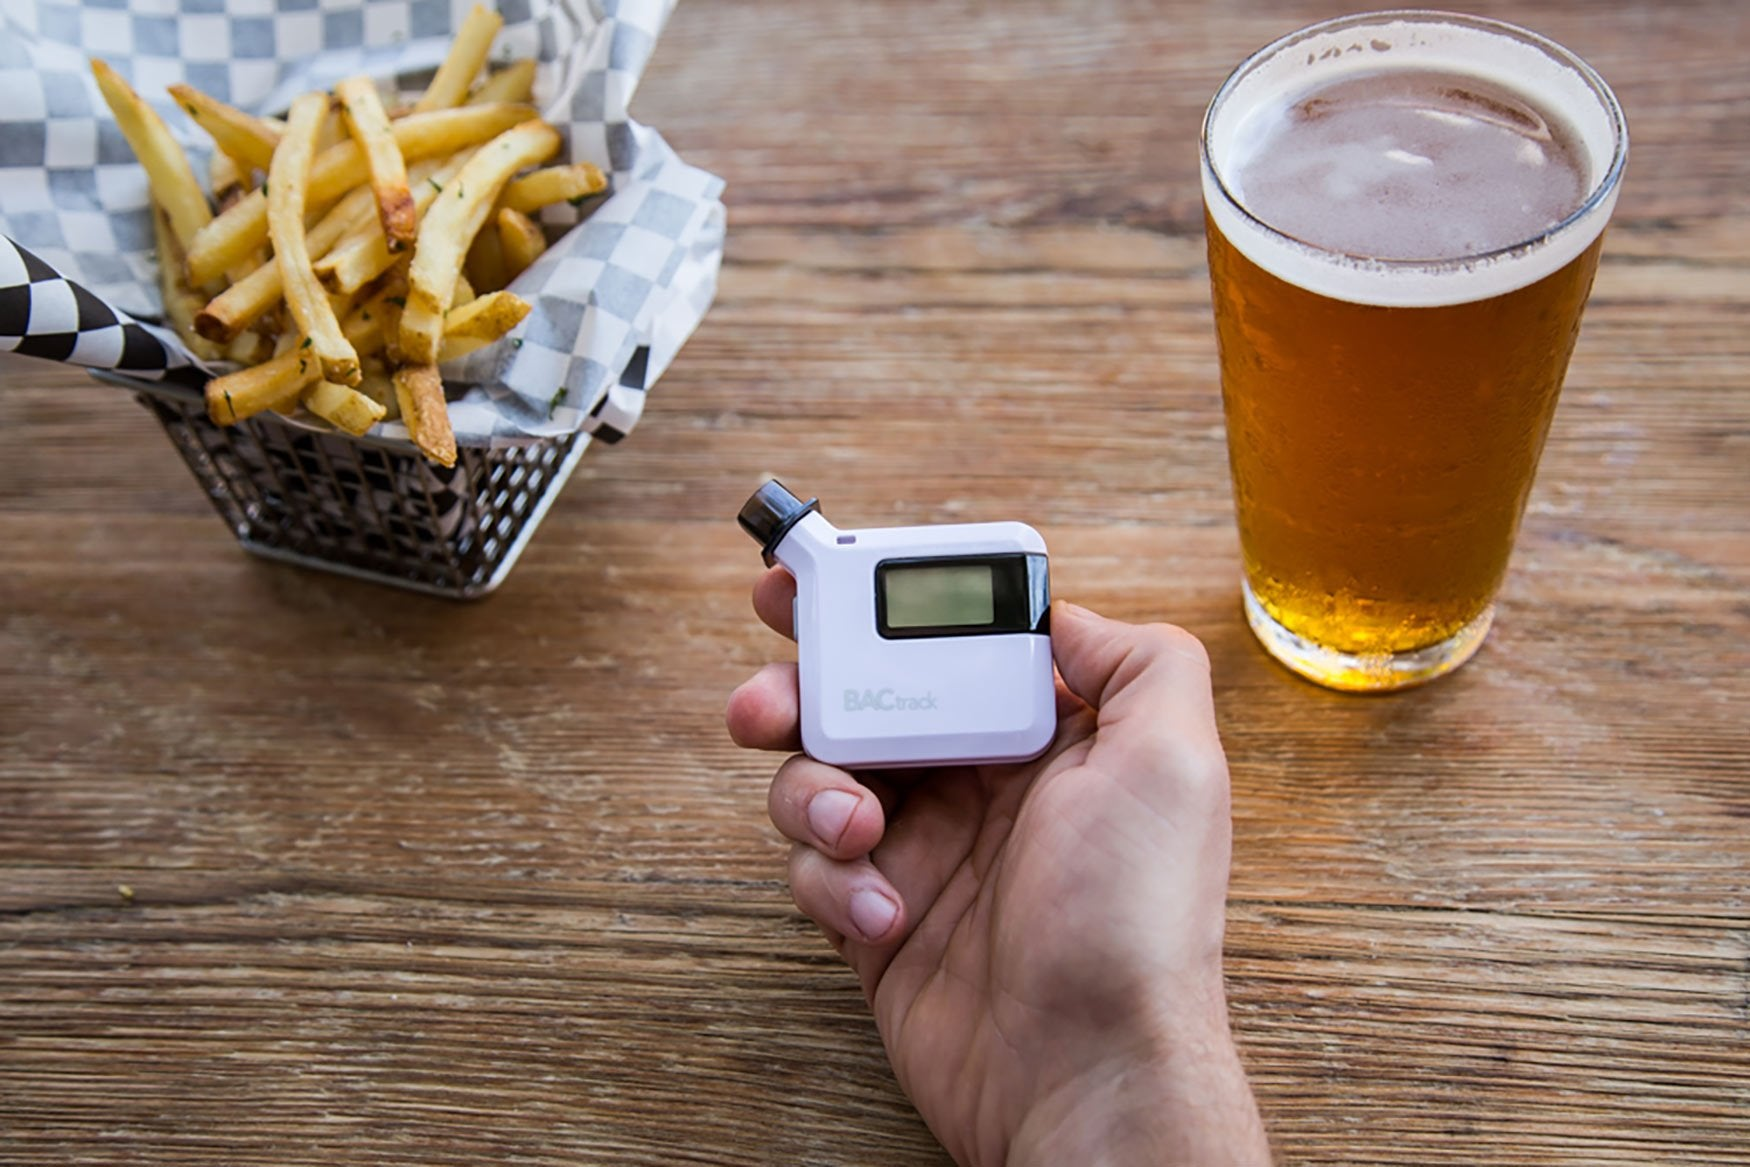 Can You Trick a Breathalyzer?